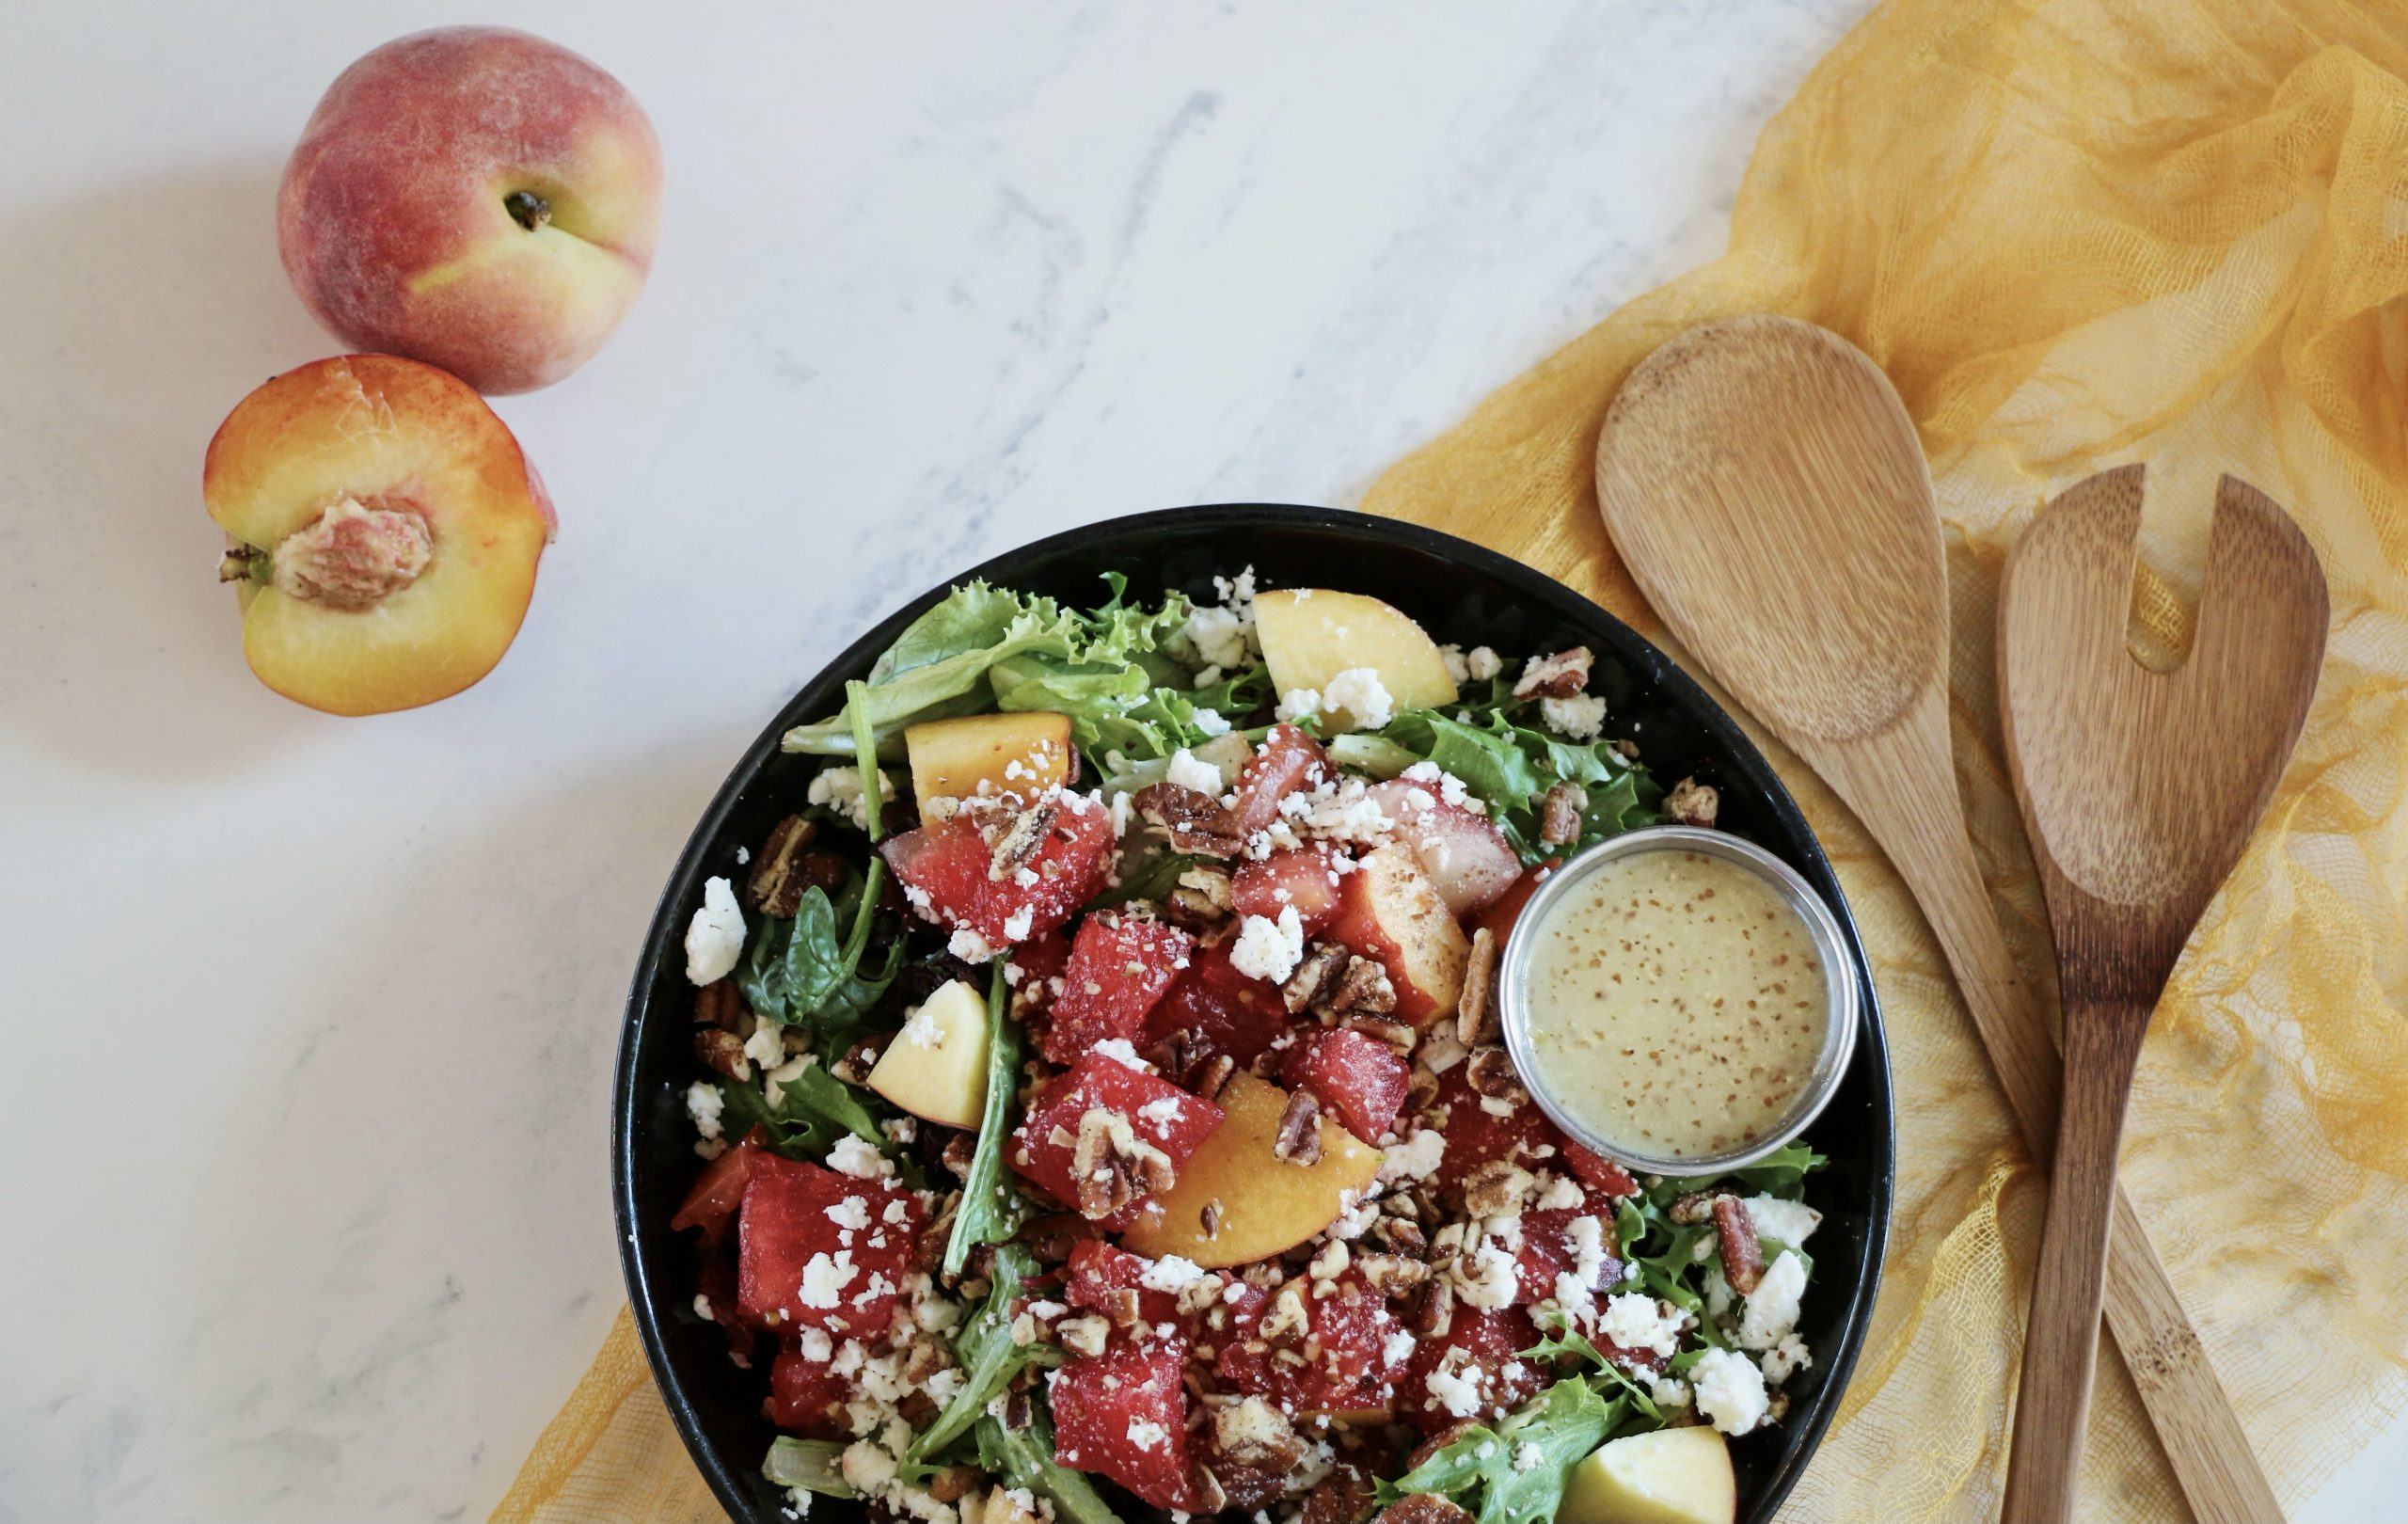 Try our Summer Salad!